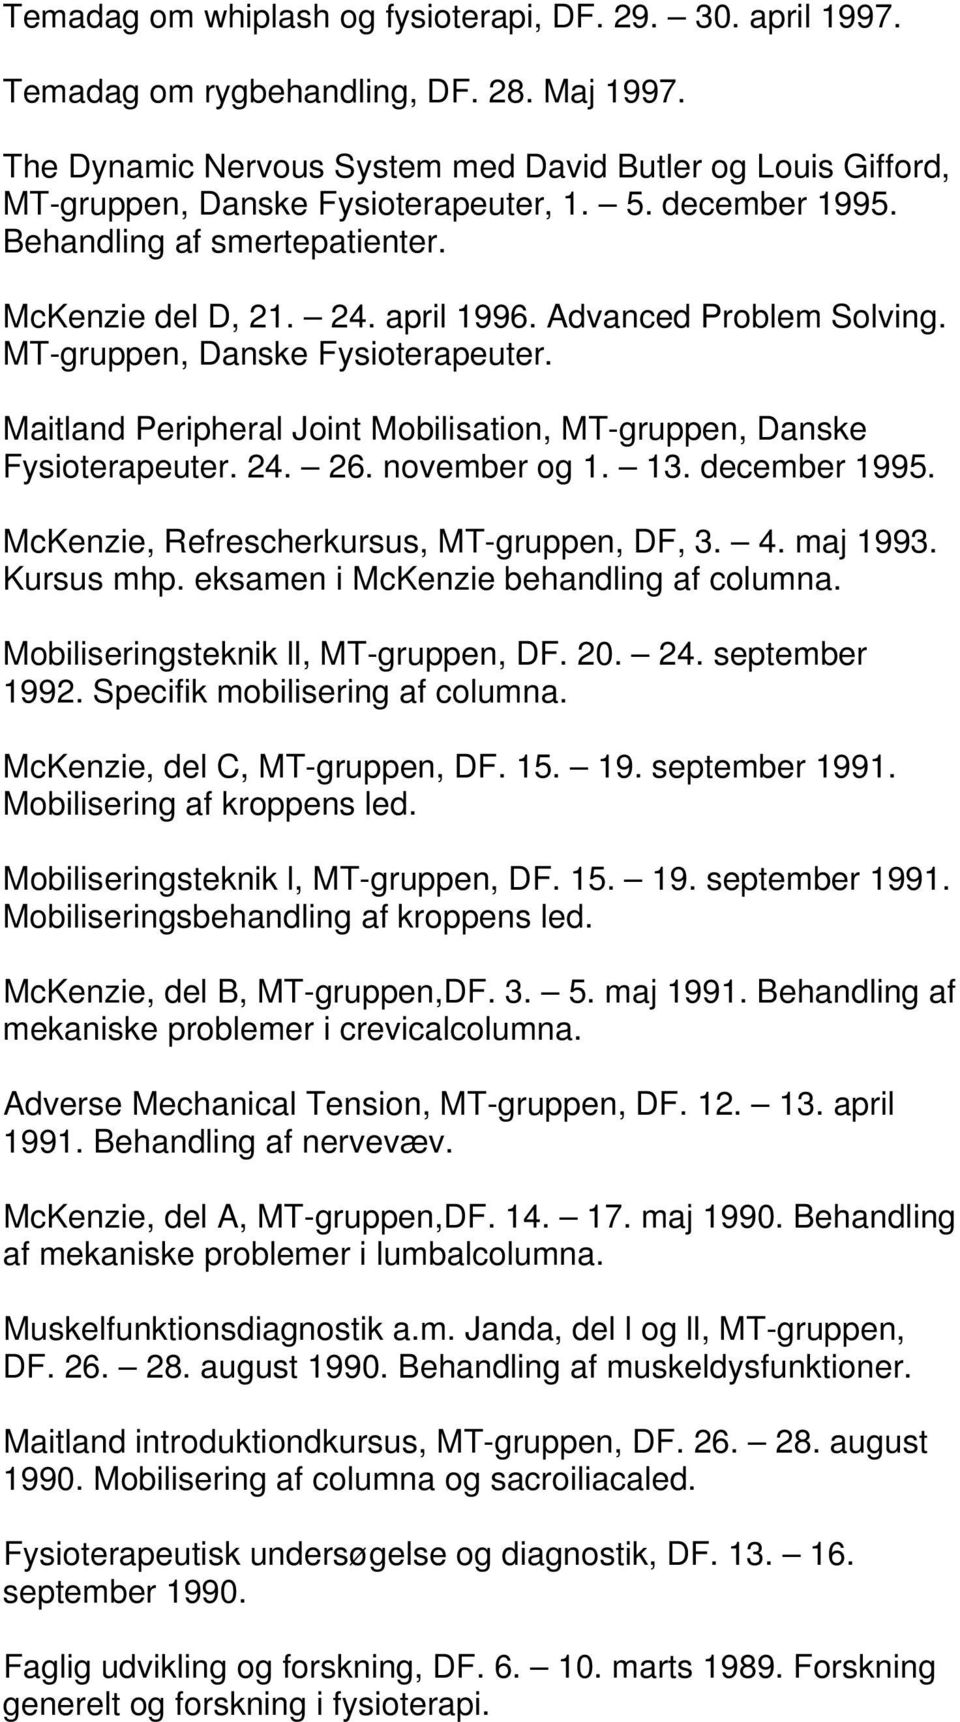 Advanced Problem Solving. MT-gruppen, Danske Fysioterapeuter. Maitland Peripheral Joint Mobilisation, MT-gruppen, Danske Fysioterapeuter. 24. 26. november og 1. 13. december 1995.